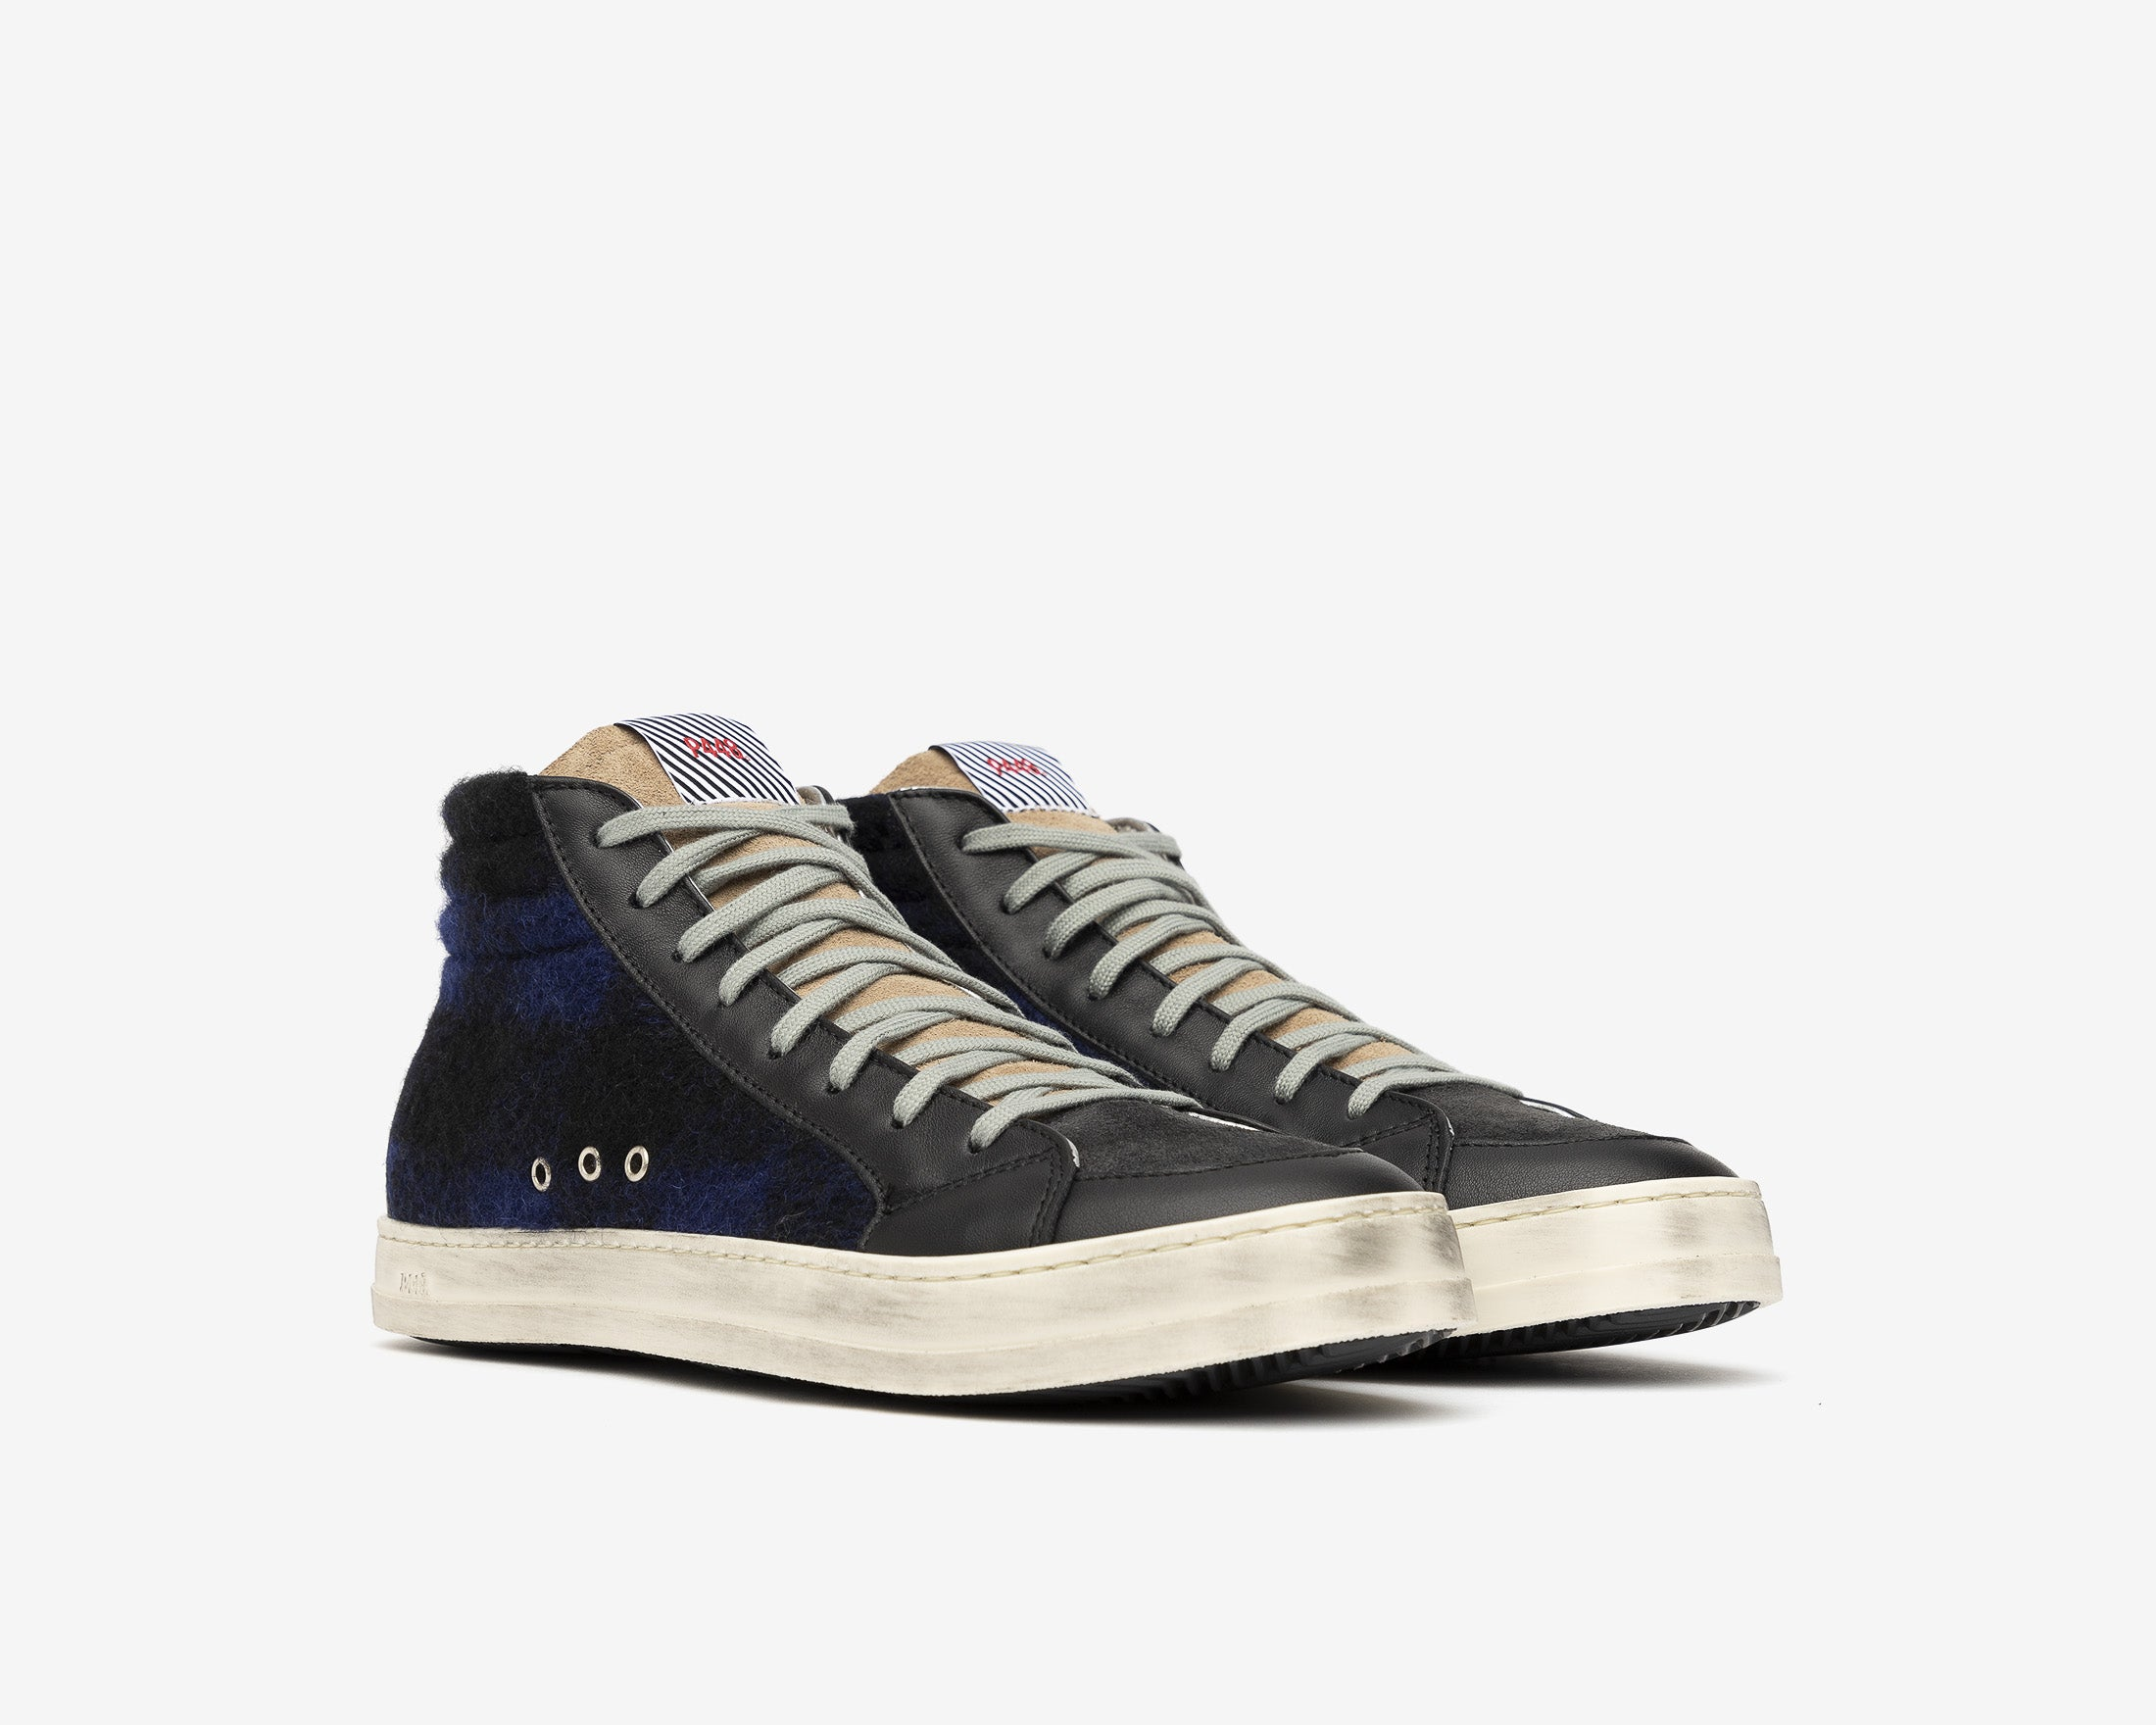 Skate High-Top Sneaker in Tartan/Royal - Side